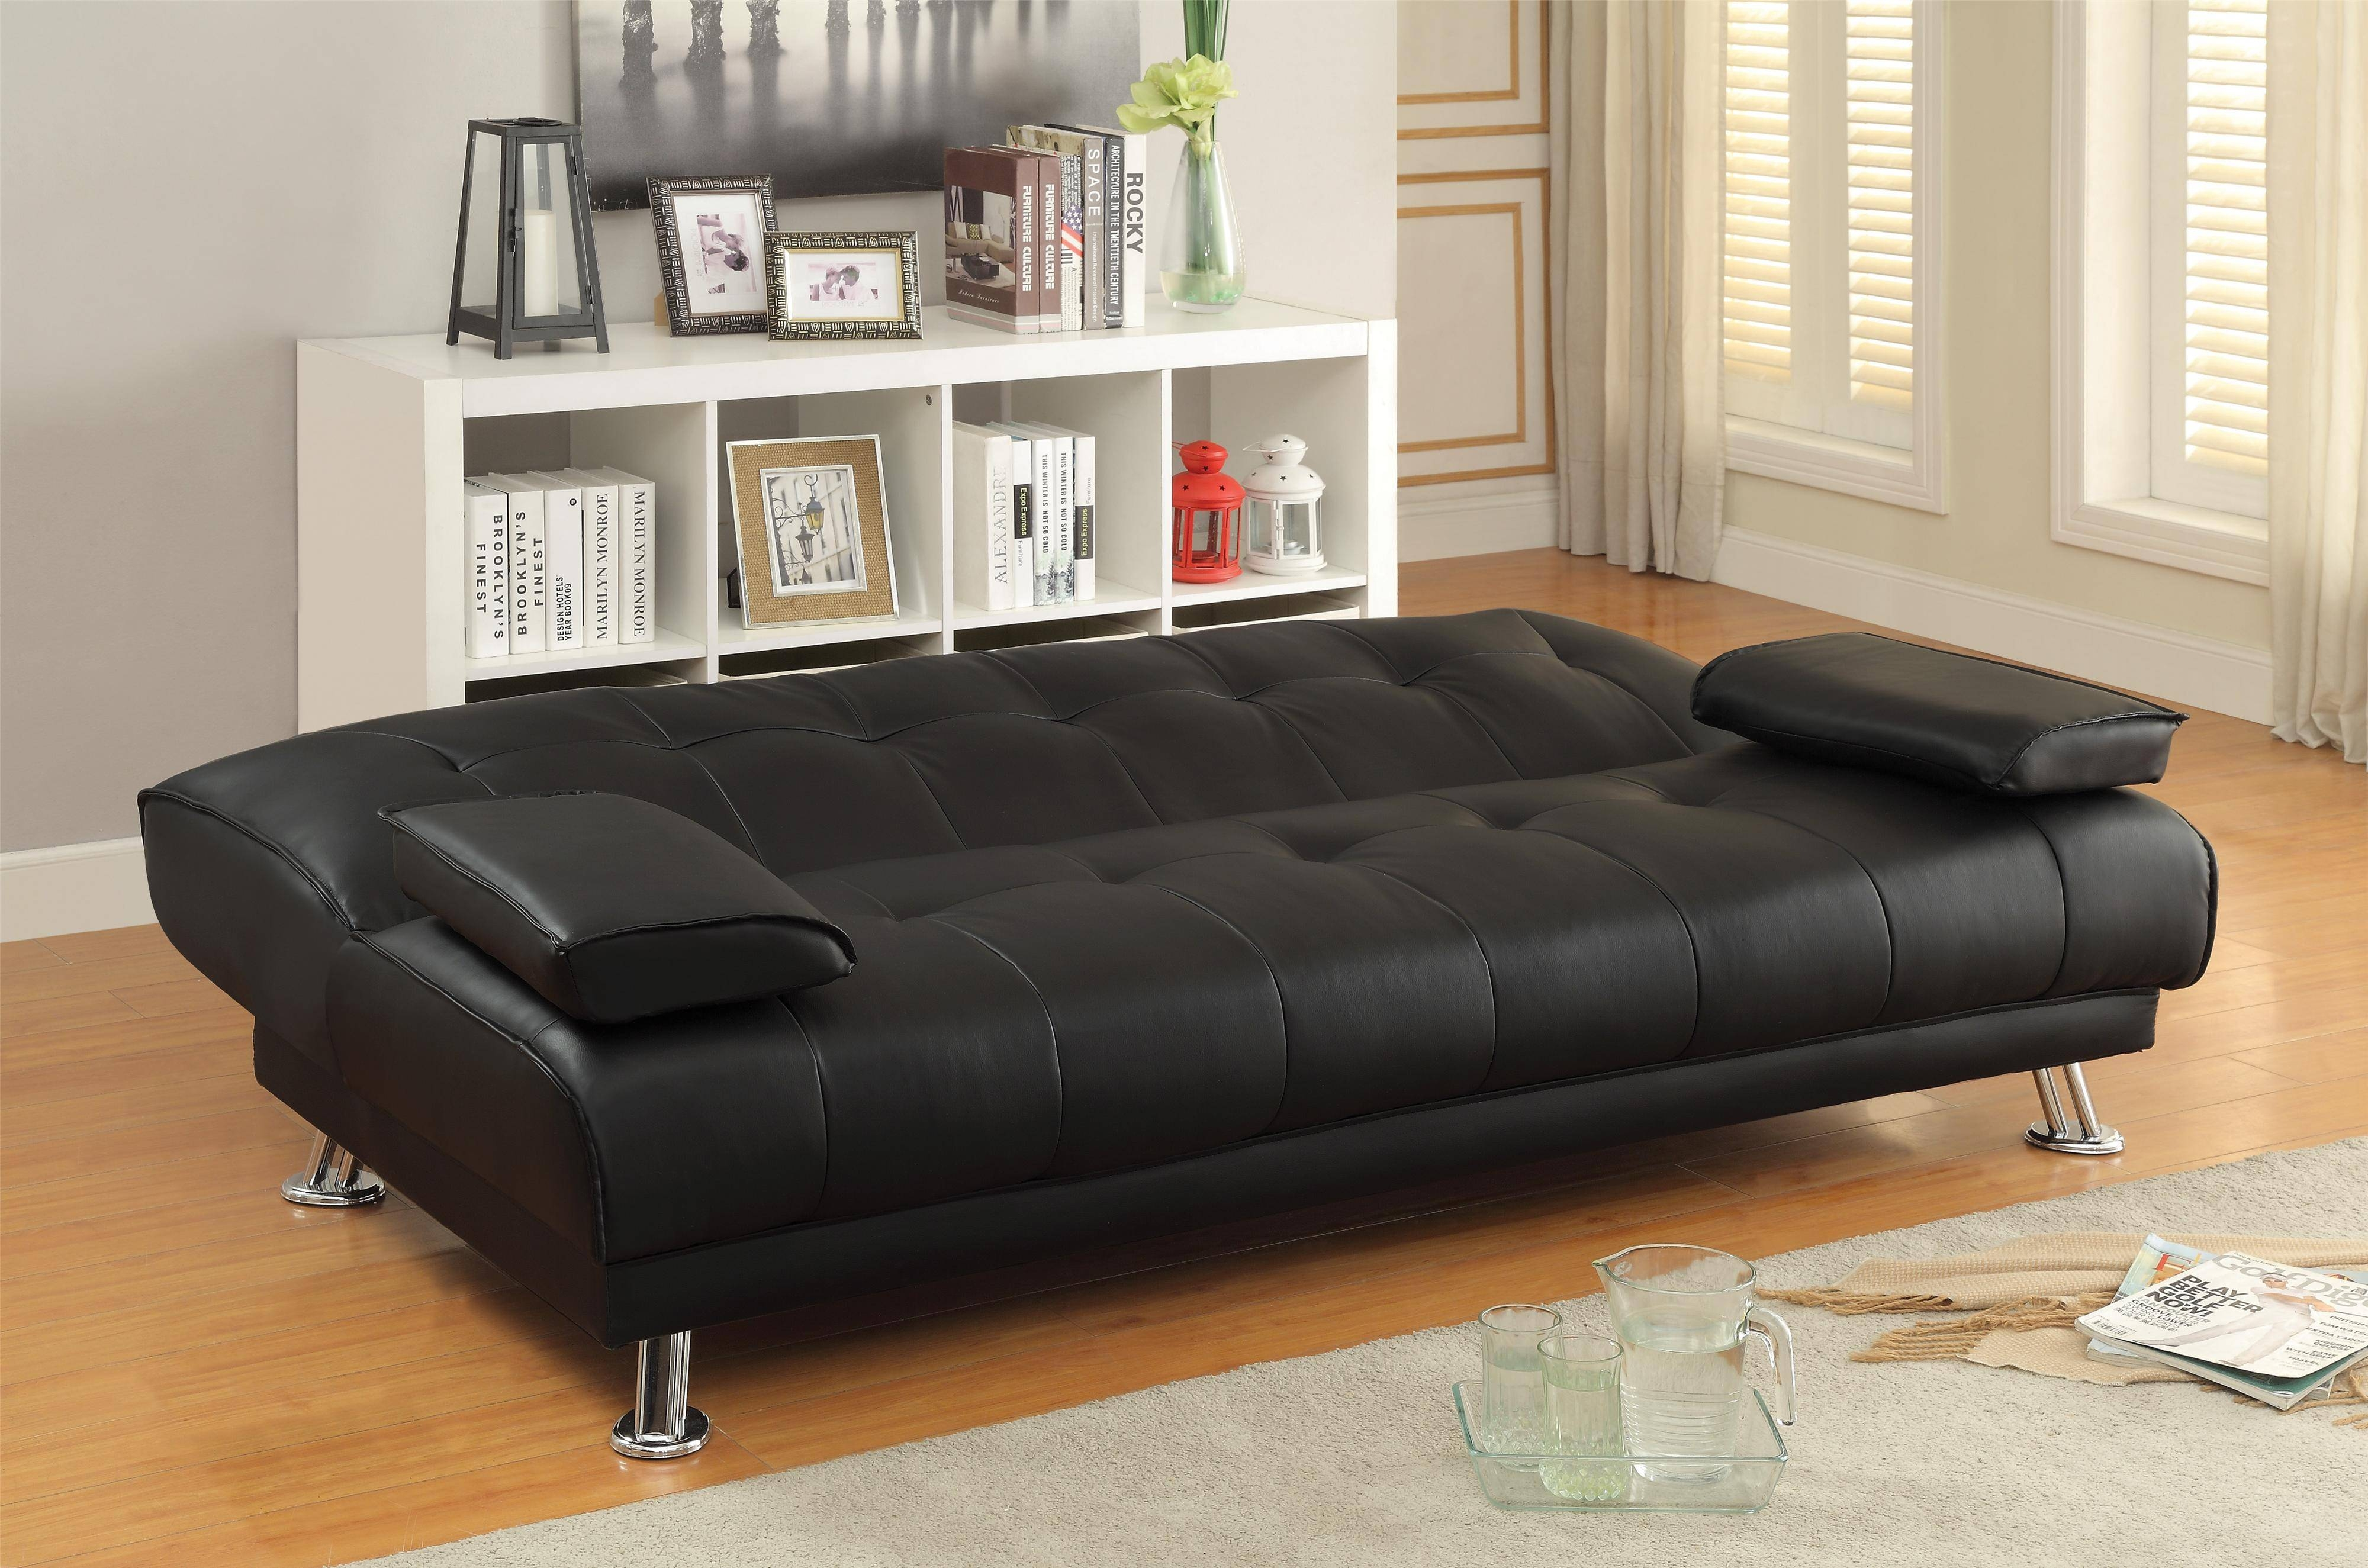 2019 Best Of Convertible Futon Sofa Beds